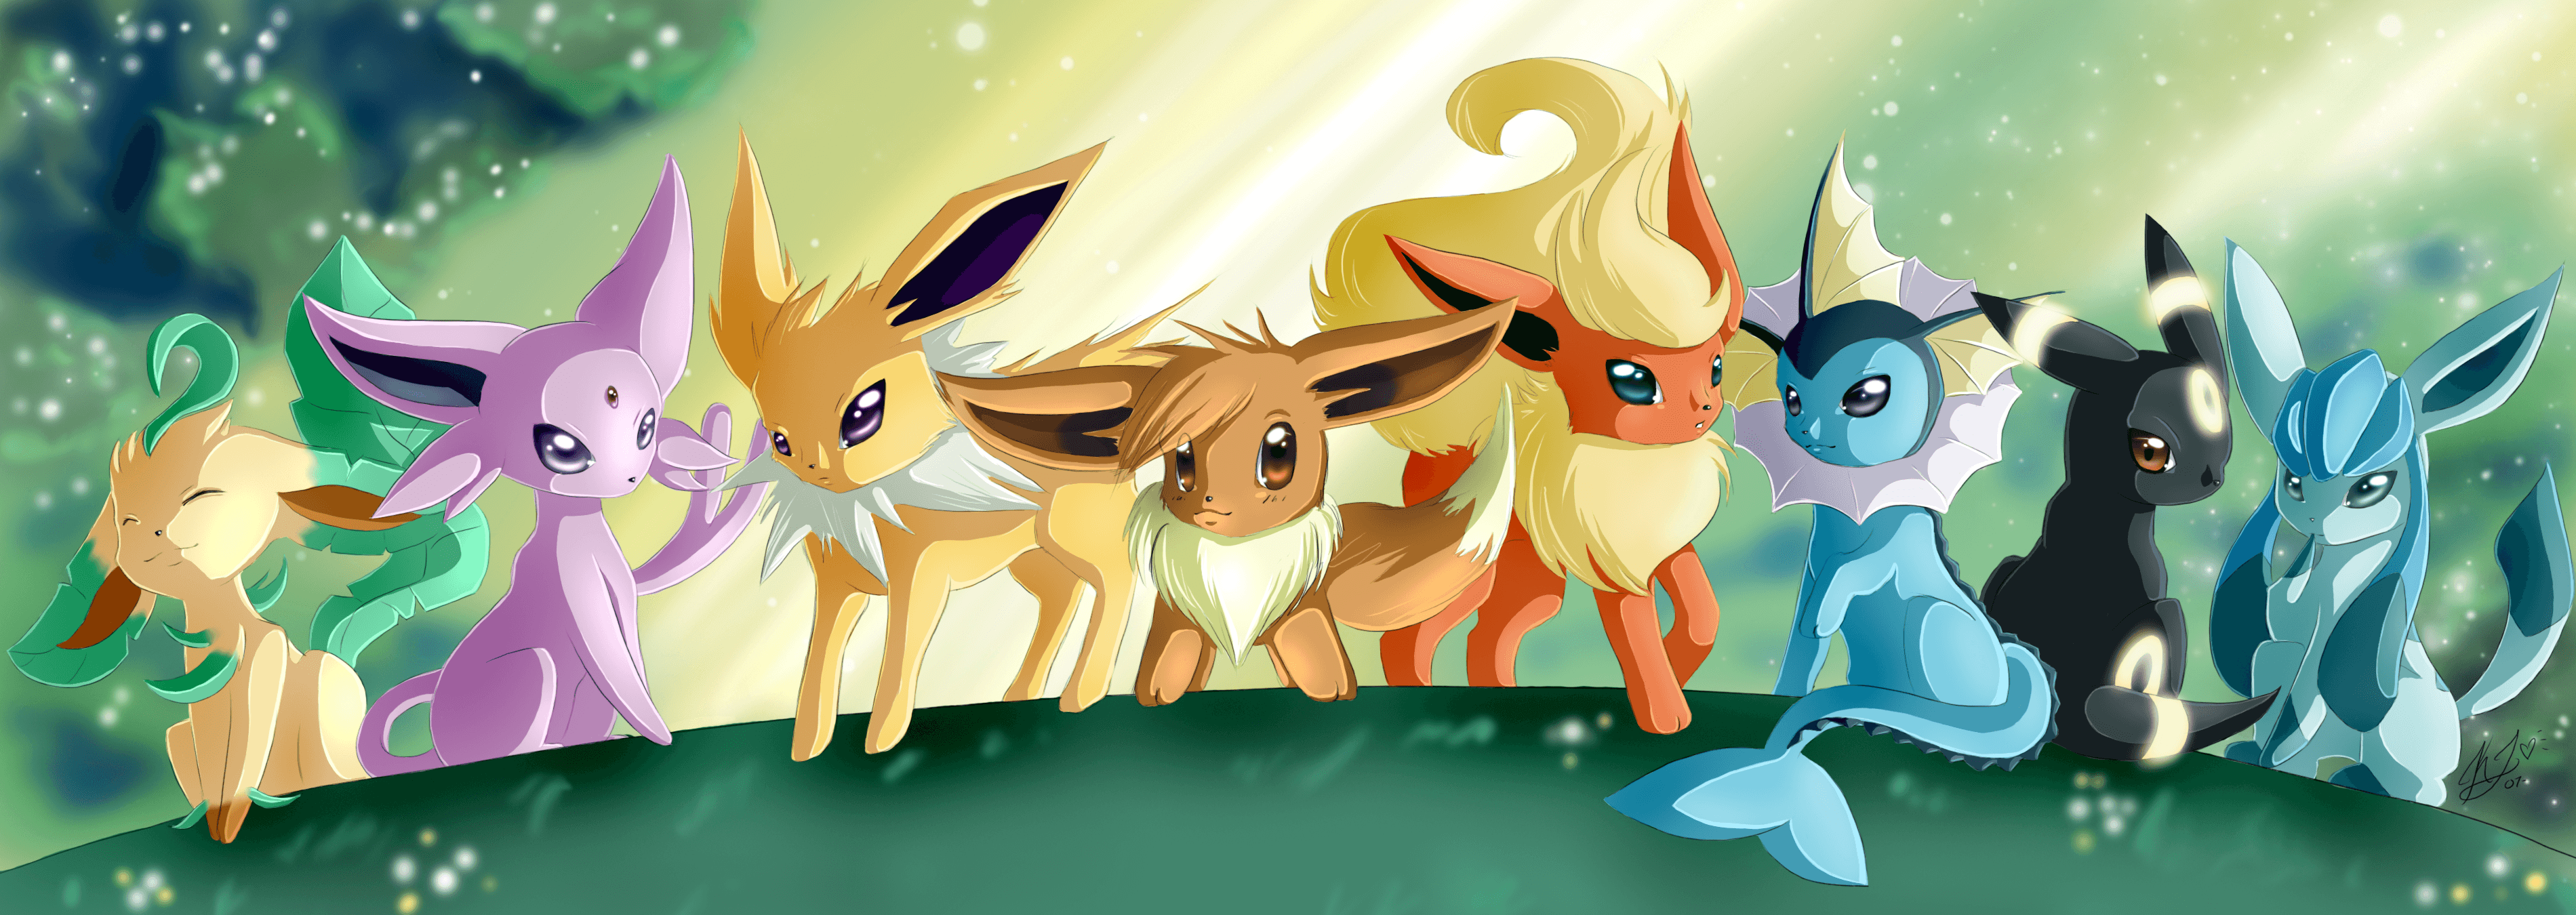 3800x1350 21 Leafeon (Pokémon) HD Wallpapers | Background Images - Wallpaper Abyss